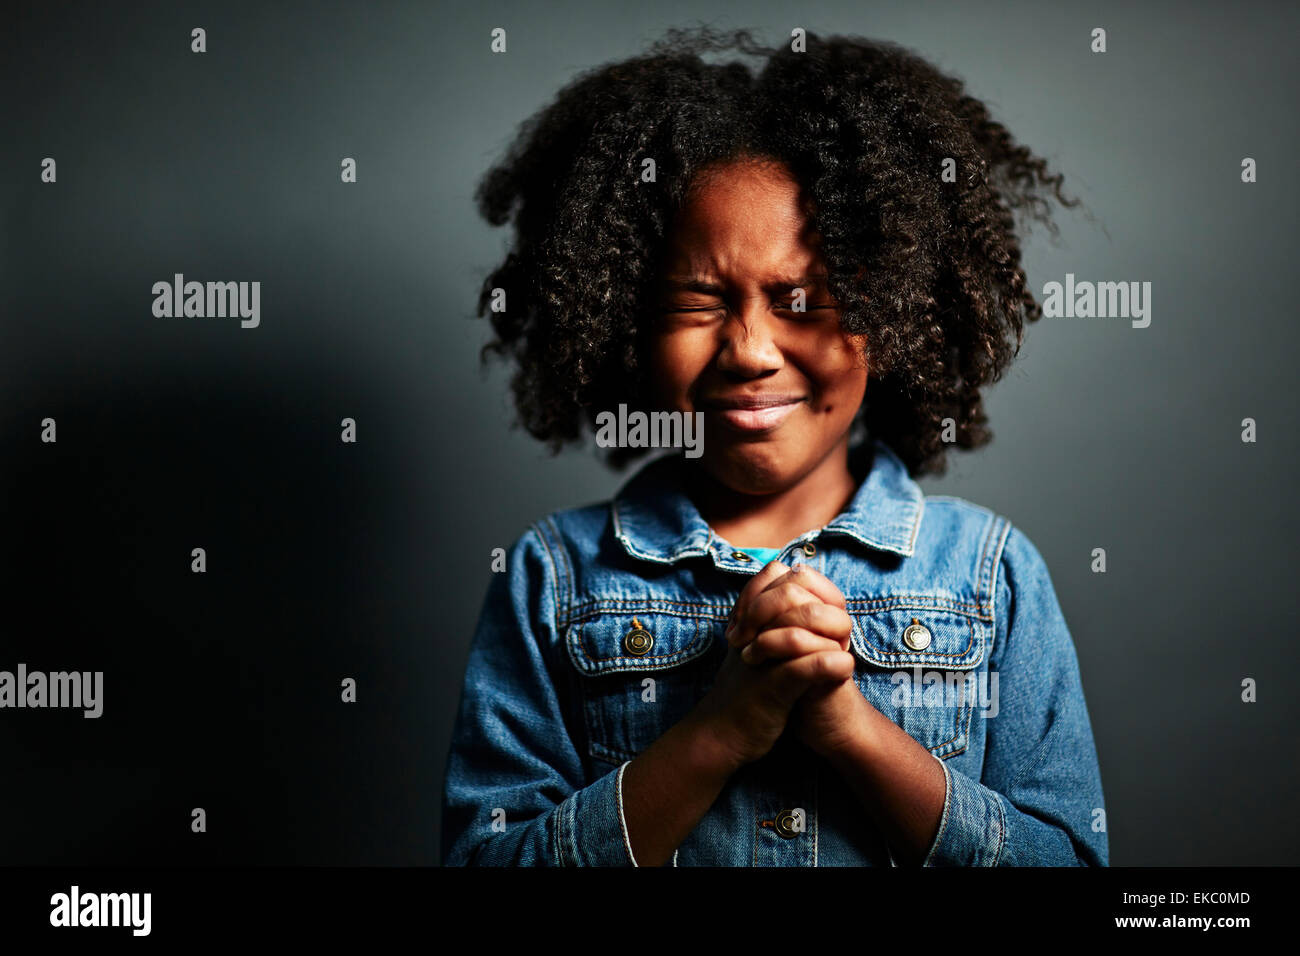 Girl with afro with hands clasped - Stock Image